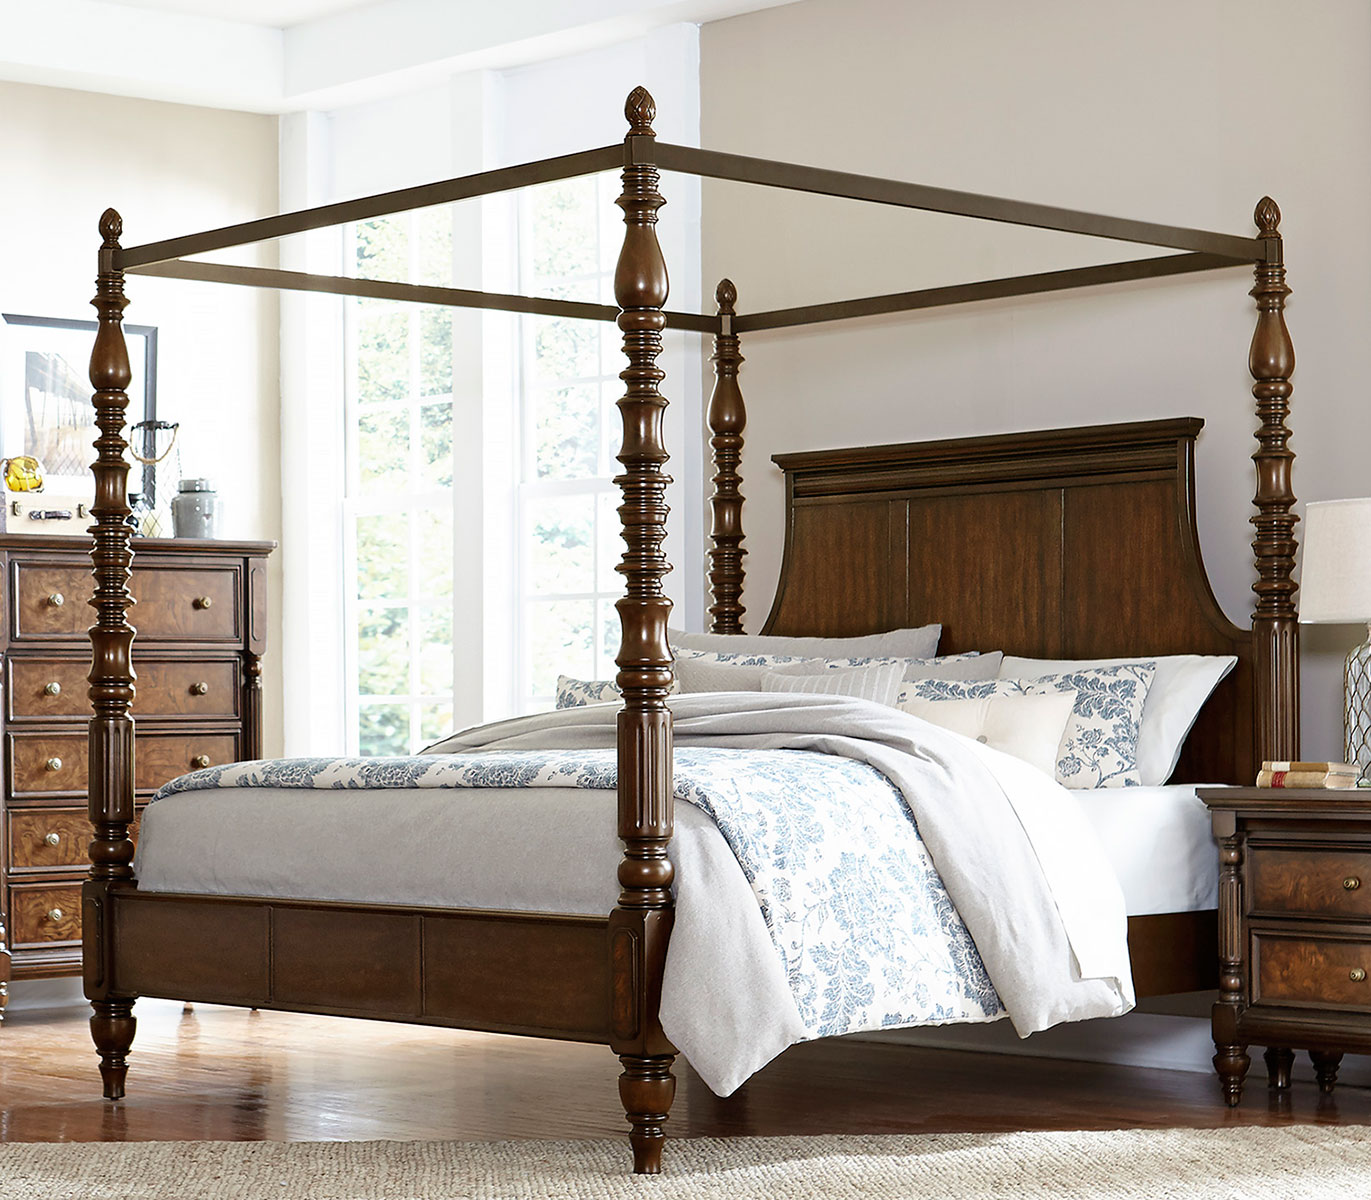 Homelegance Verlyn Canopy Bed - Cherry with Burl Accents